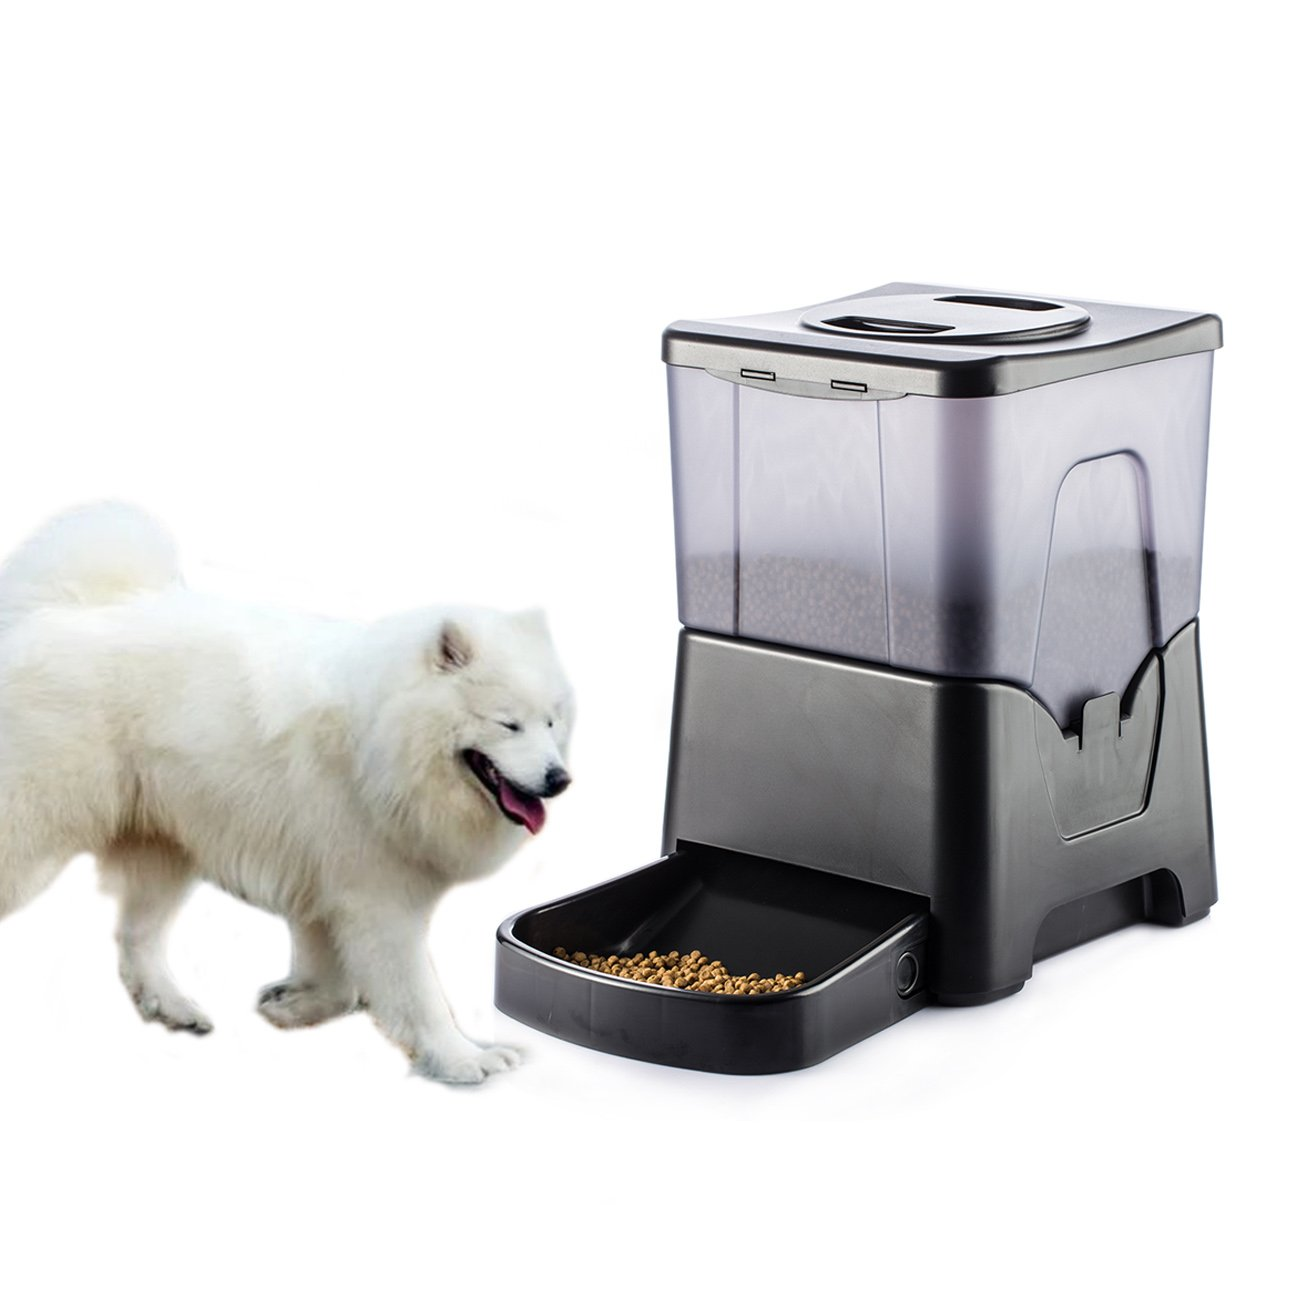 Happy & Polly Pet Feeder Electronic Automatic Pet Distributer 10.56L Large Capacity with LED Display for Dogs Cats